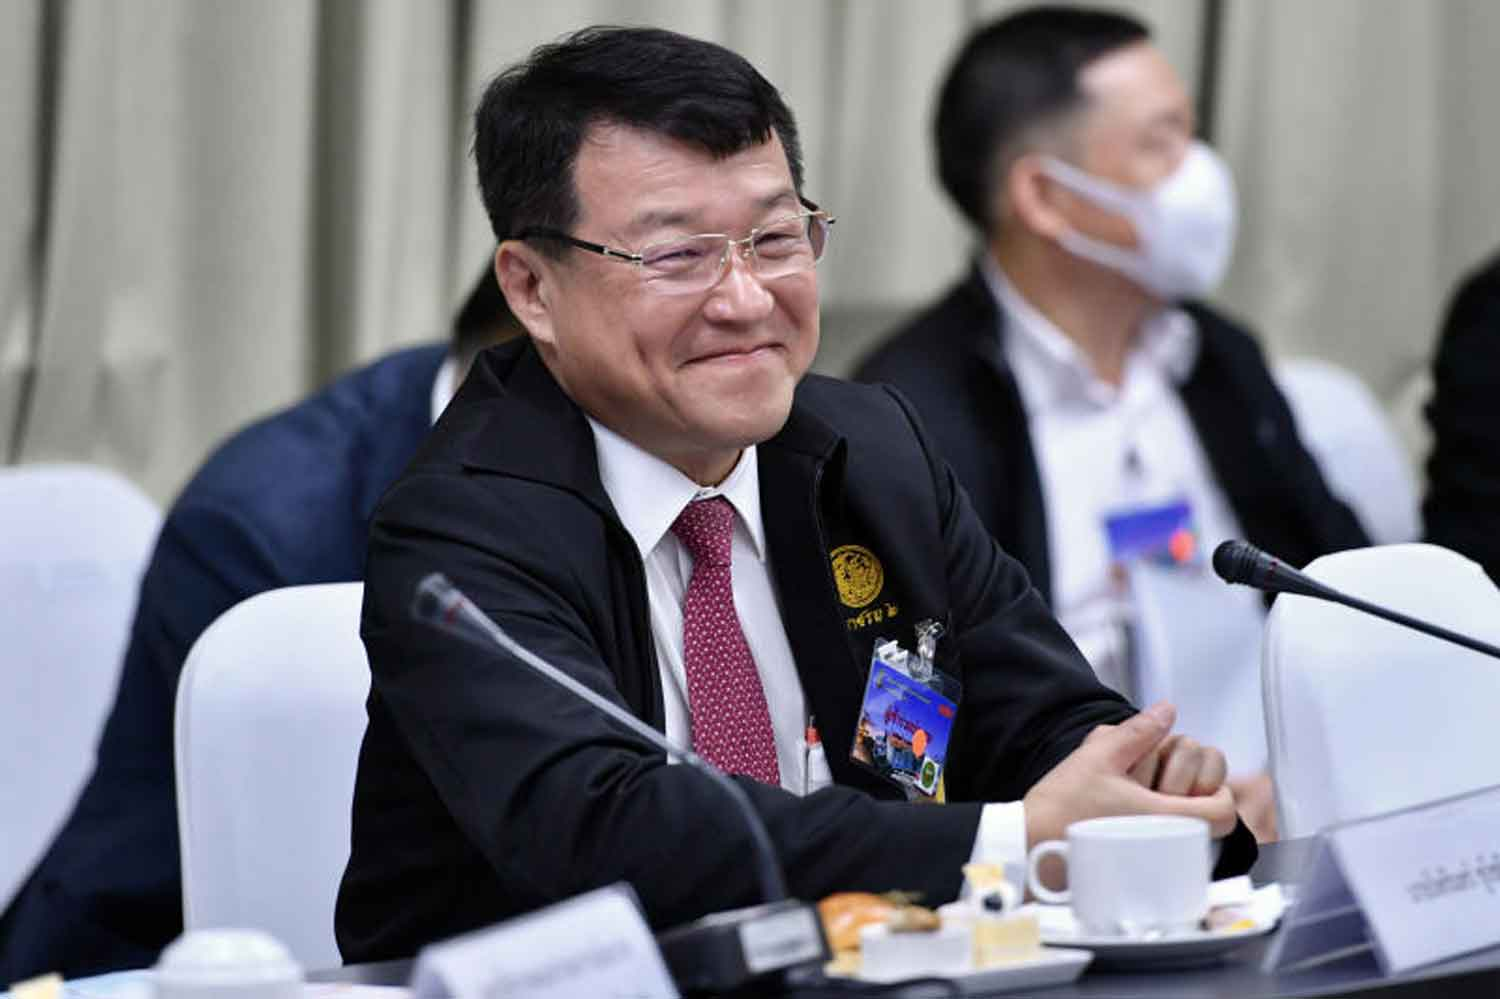 Pailin Chuchottaworn, head of a panel assigned to steer economic management measures, questions government's Covid-19 austere measures.